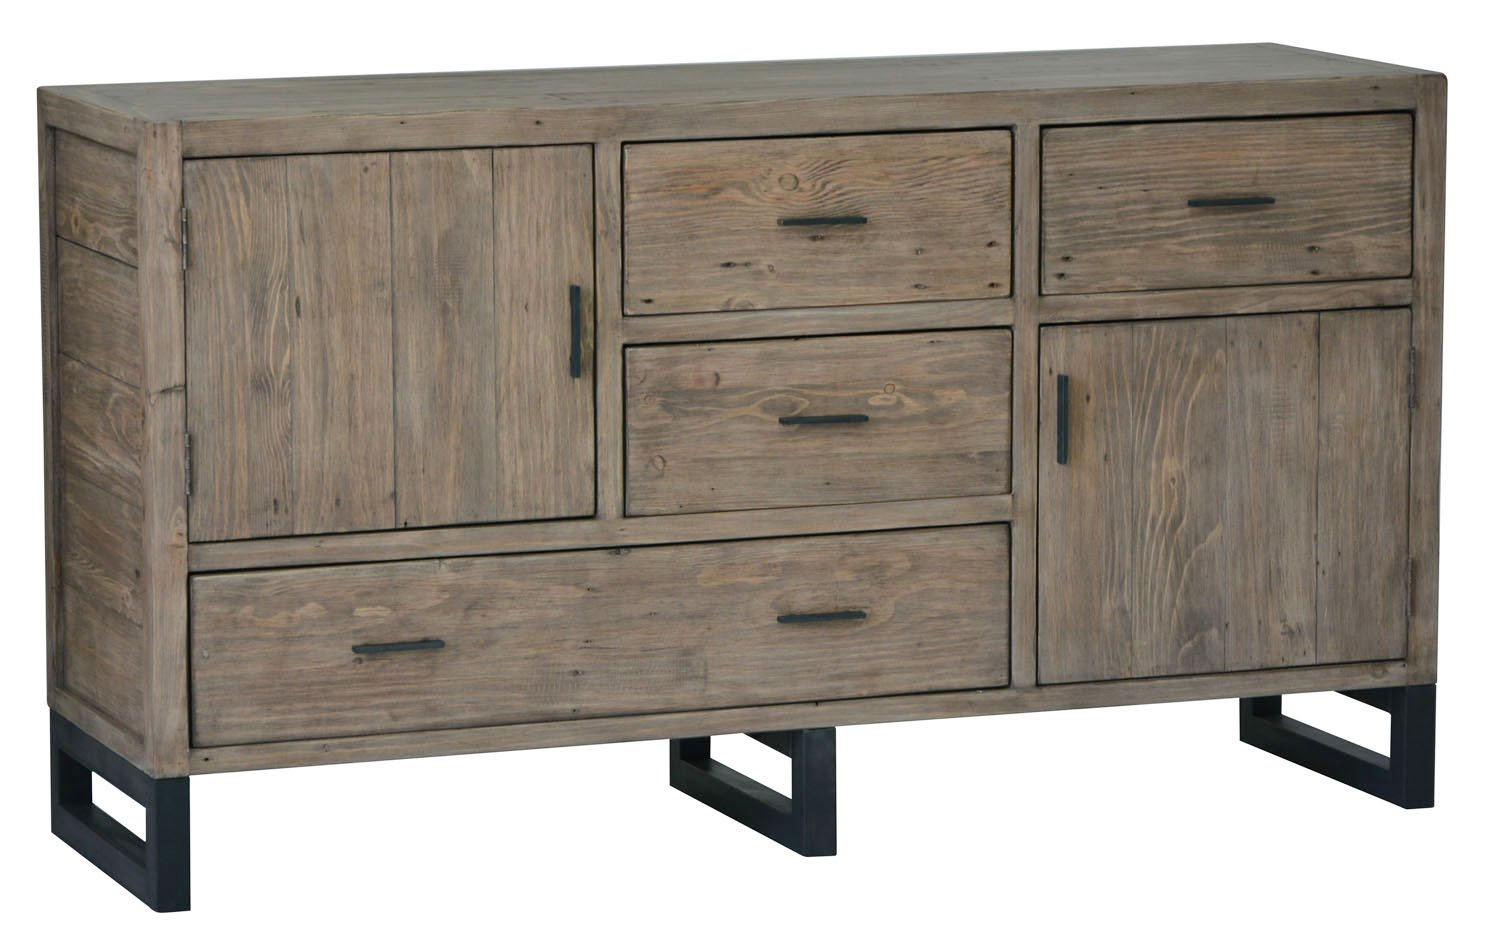 Picture of Wooden Forge Sideboard - Sundried